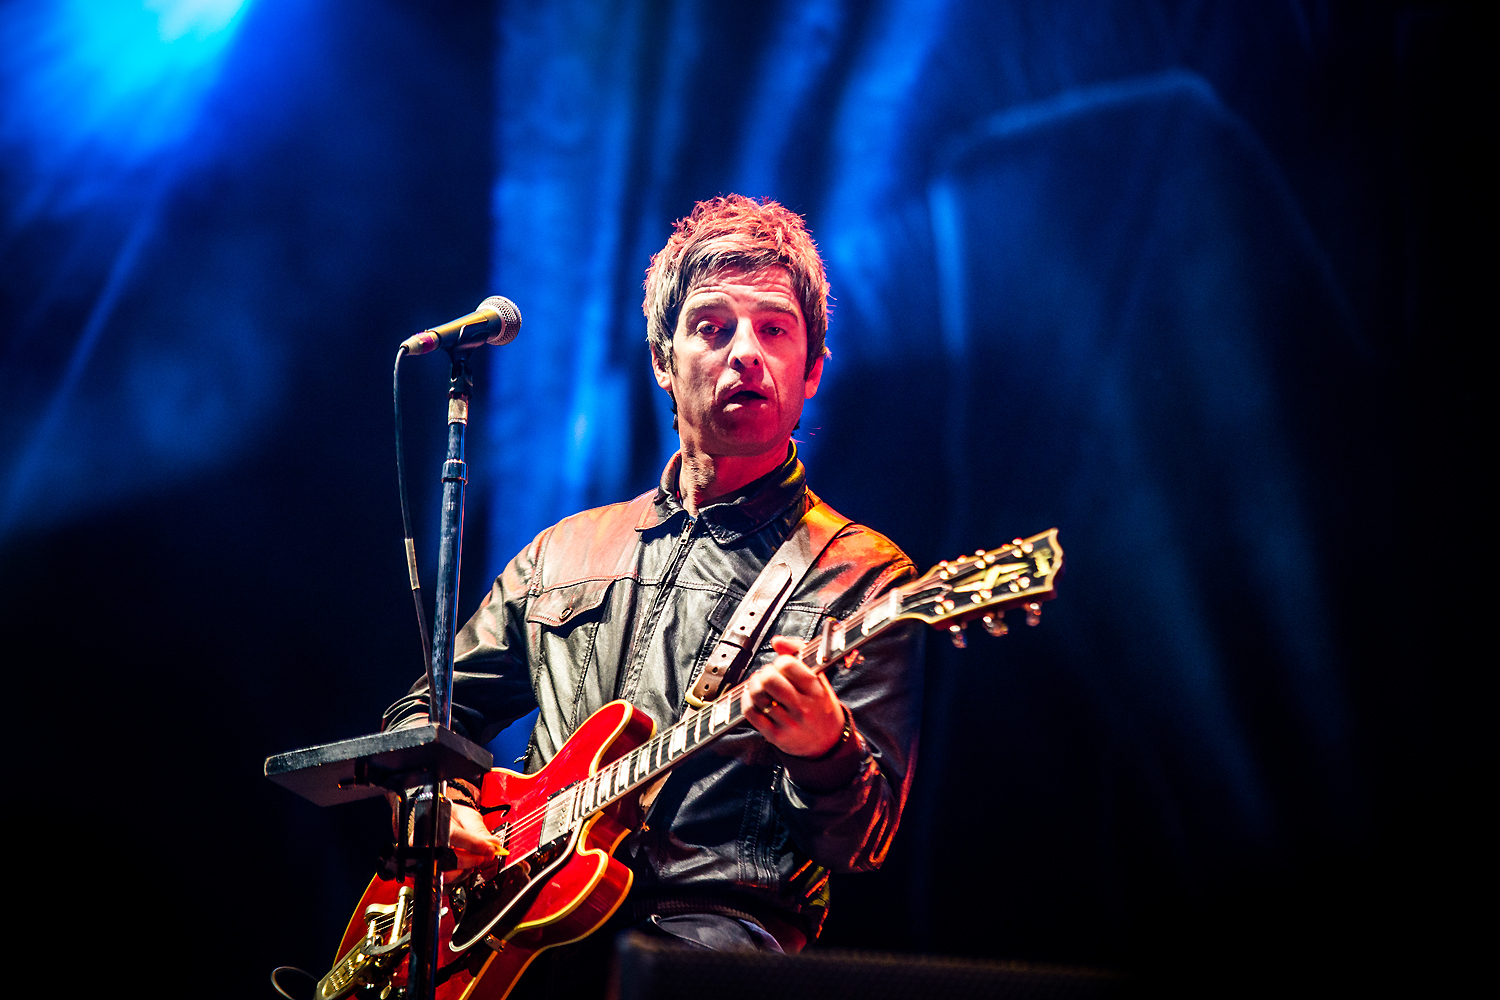 BKS 703 - Noel Gallagher's High Flying Birds